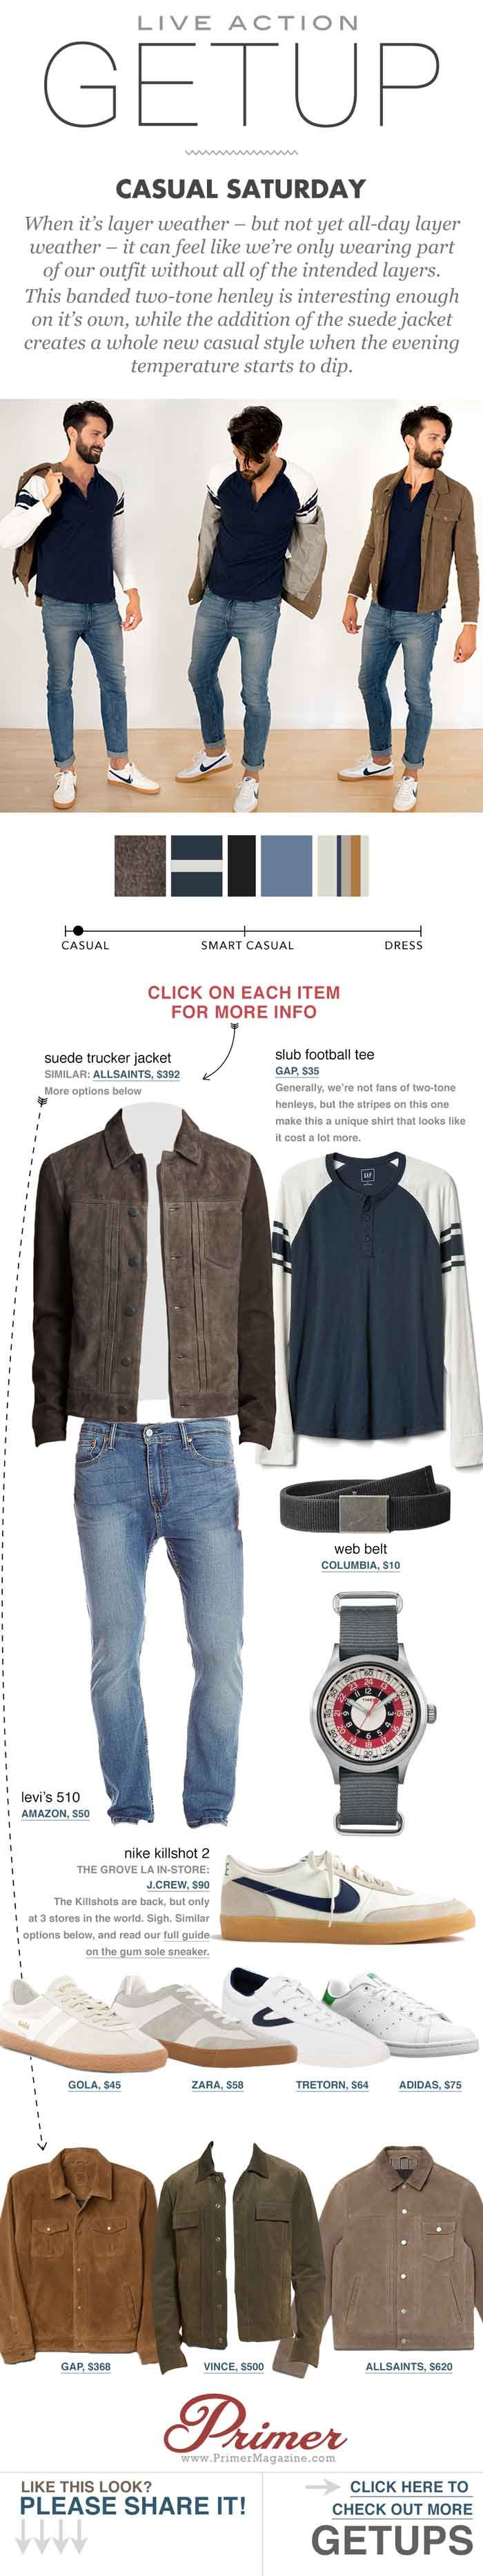 Live action getup casual saturday man outfit man style and